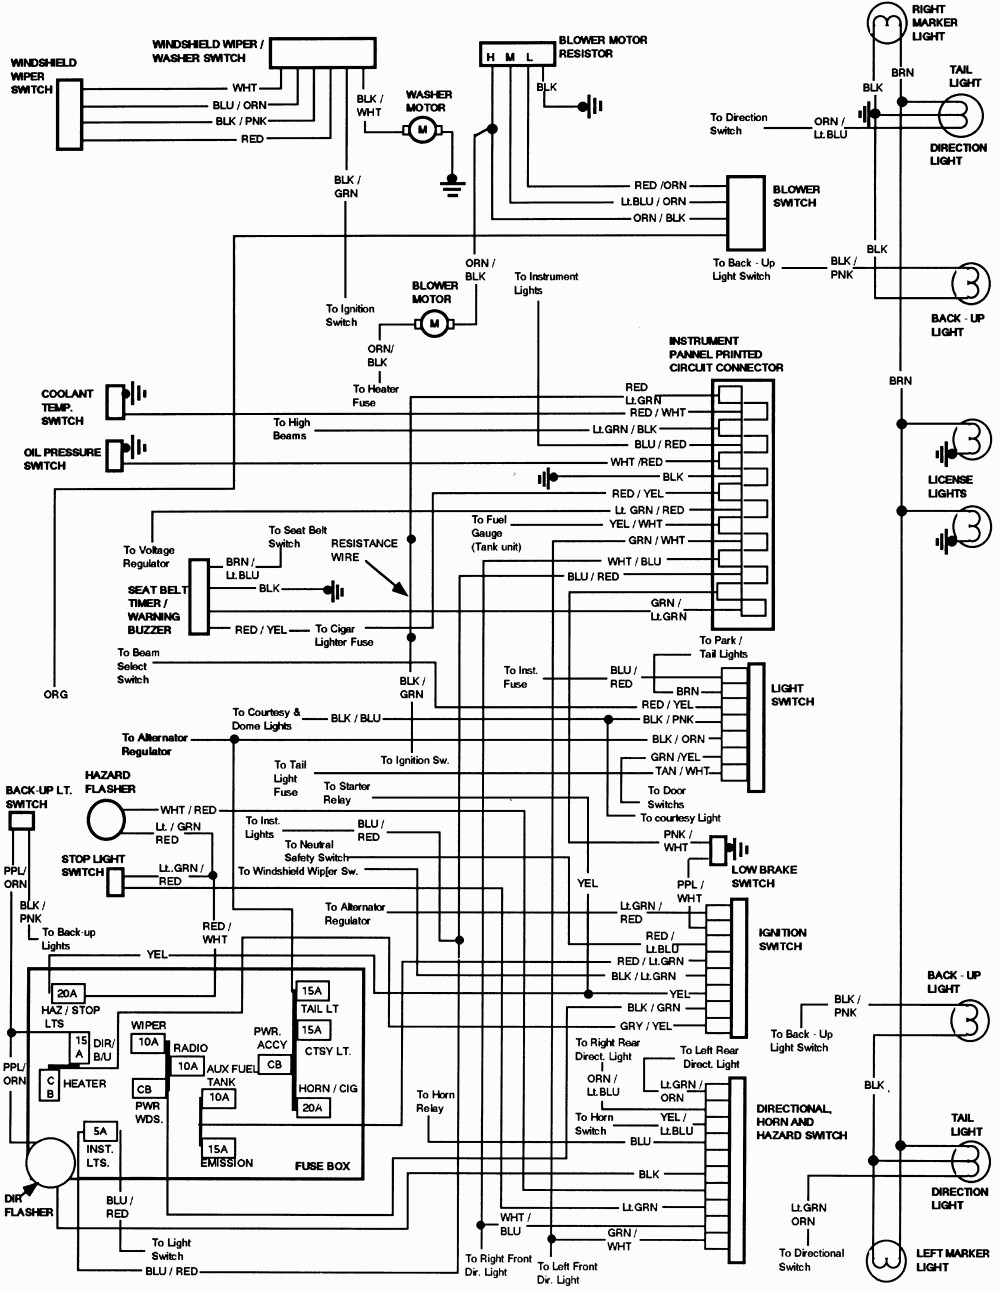 medium resolution of 2011 f 150 hvac wiring schematic wiring diagram fascinating 2011 ford fiesta wiring diagram pdf 2011 ford wiring diagram